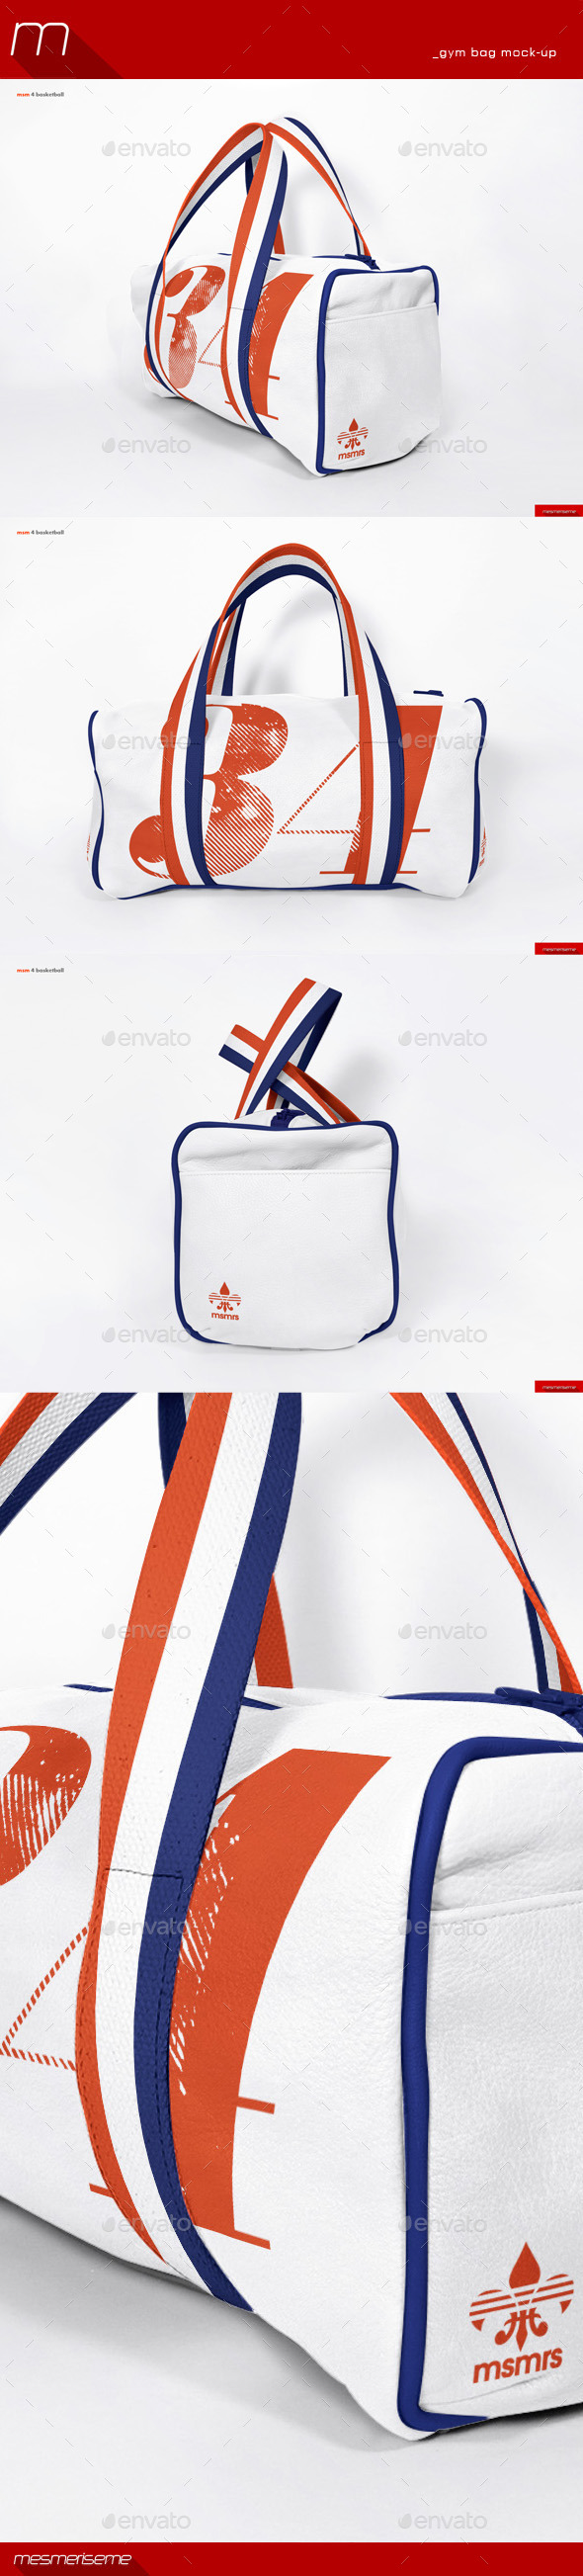 GraphicRiver Gym Bag Mock-Up 8899524